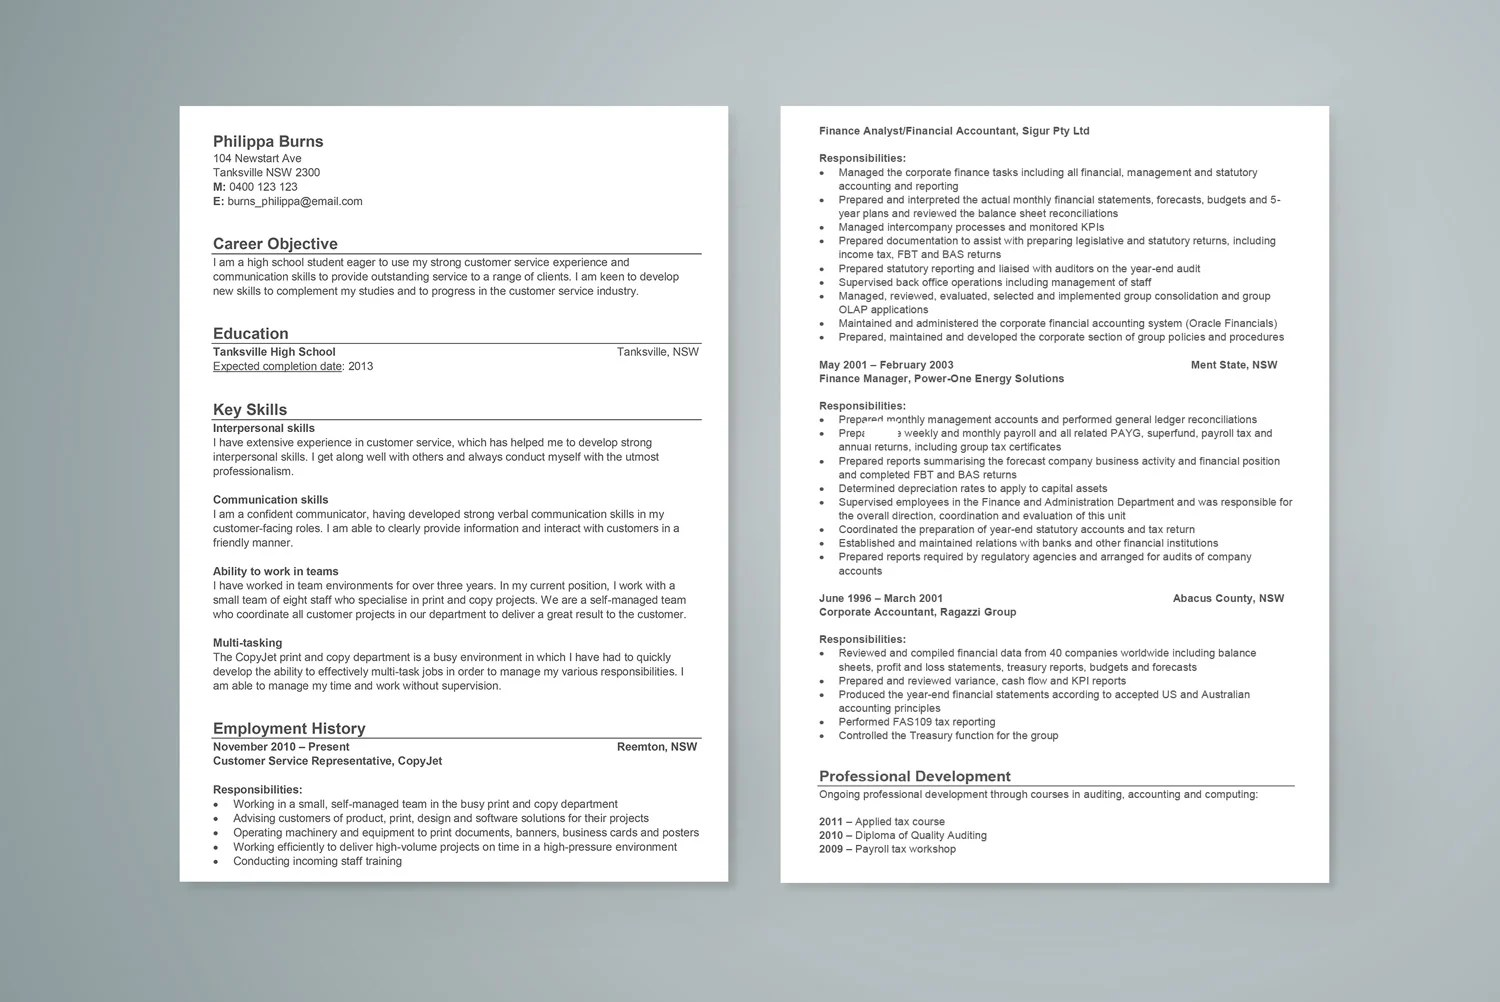 plain text resume on mac free resume templates youll want to have in 2017 high school - Plain Text Resume Sample